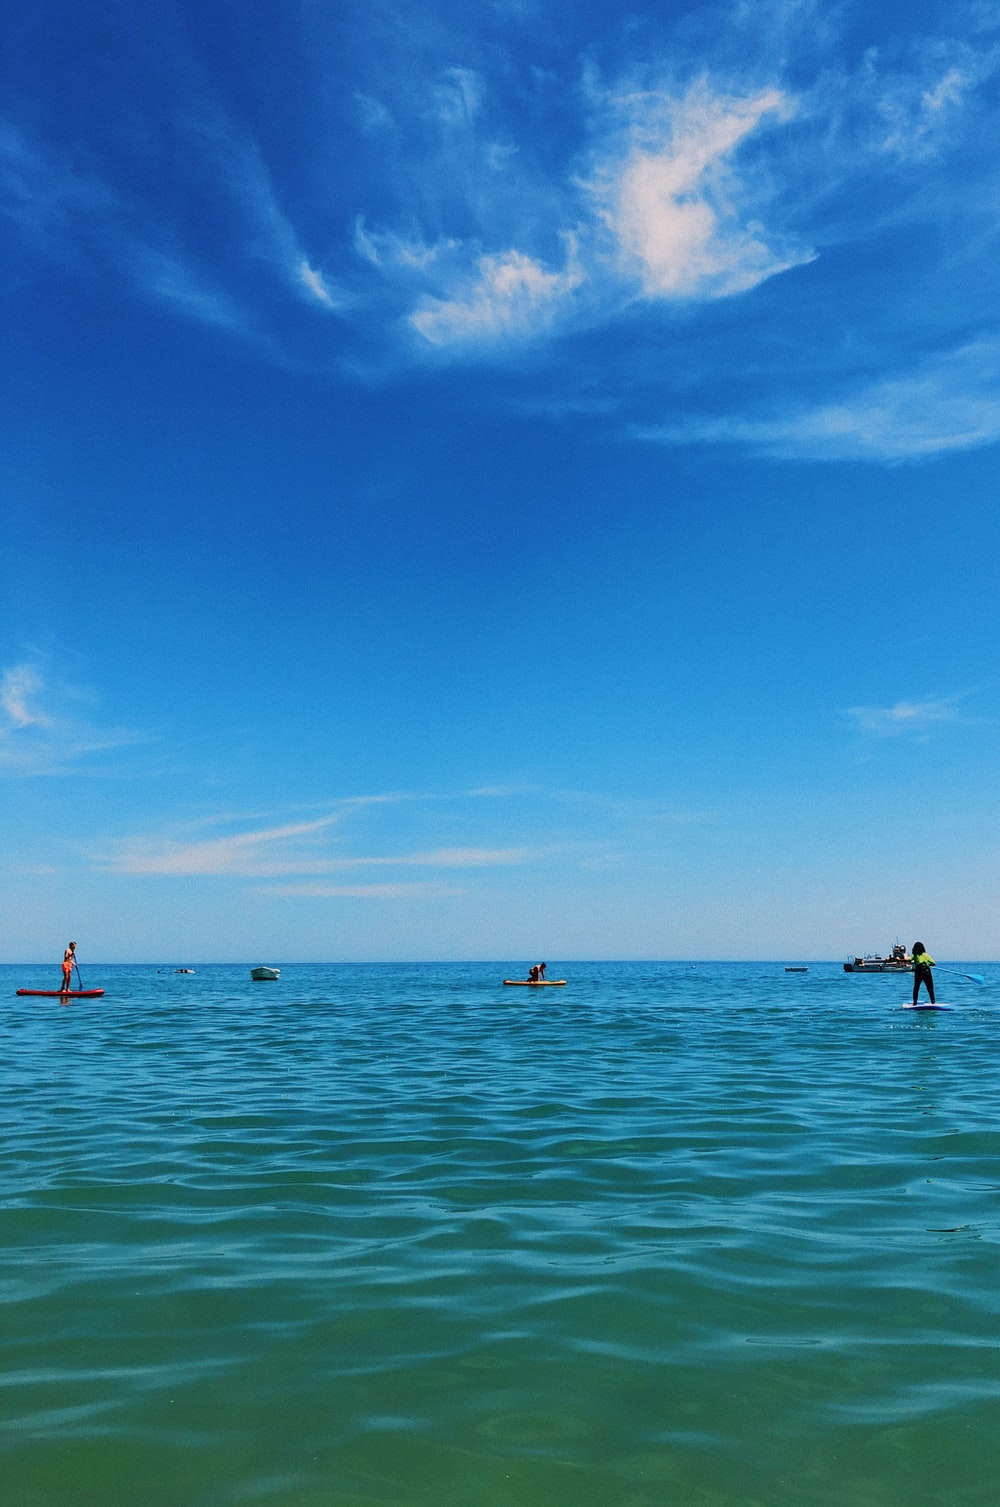 people in sea under blue sky during daytime